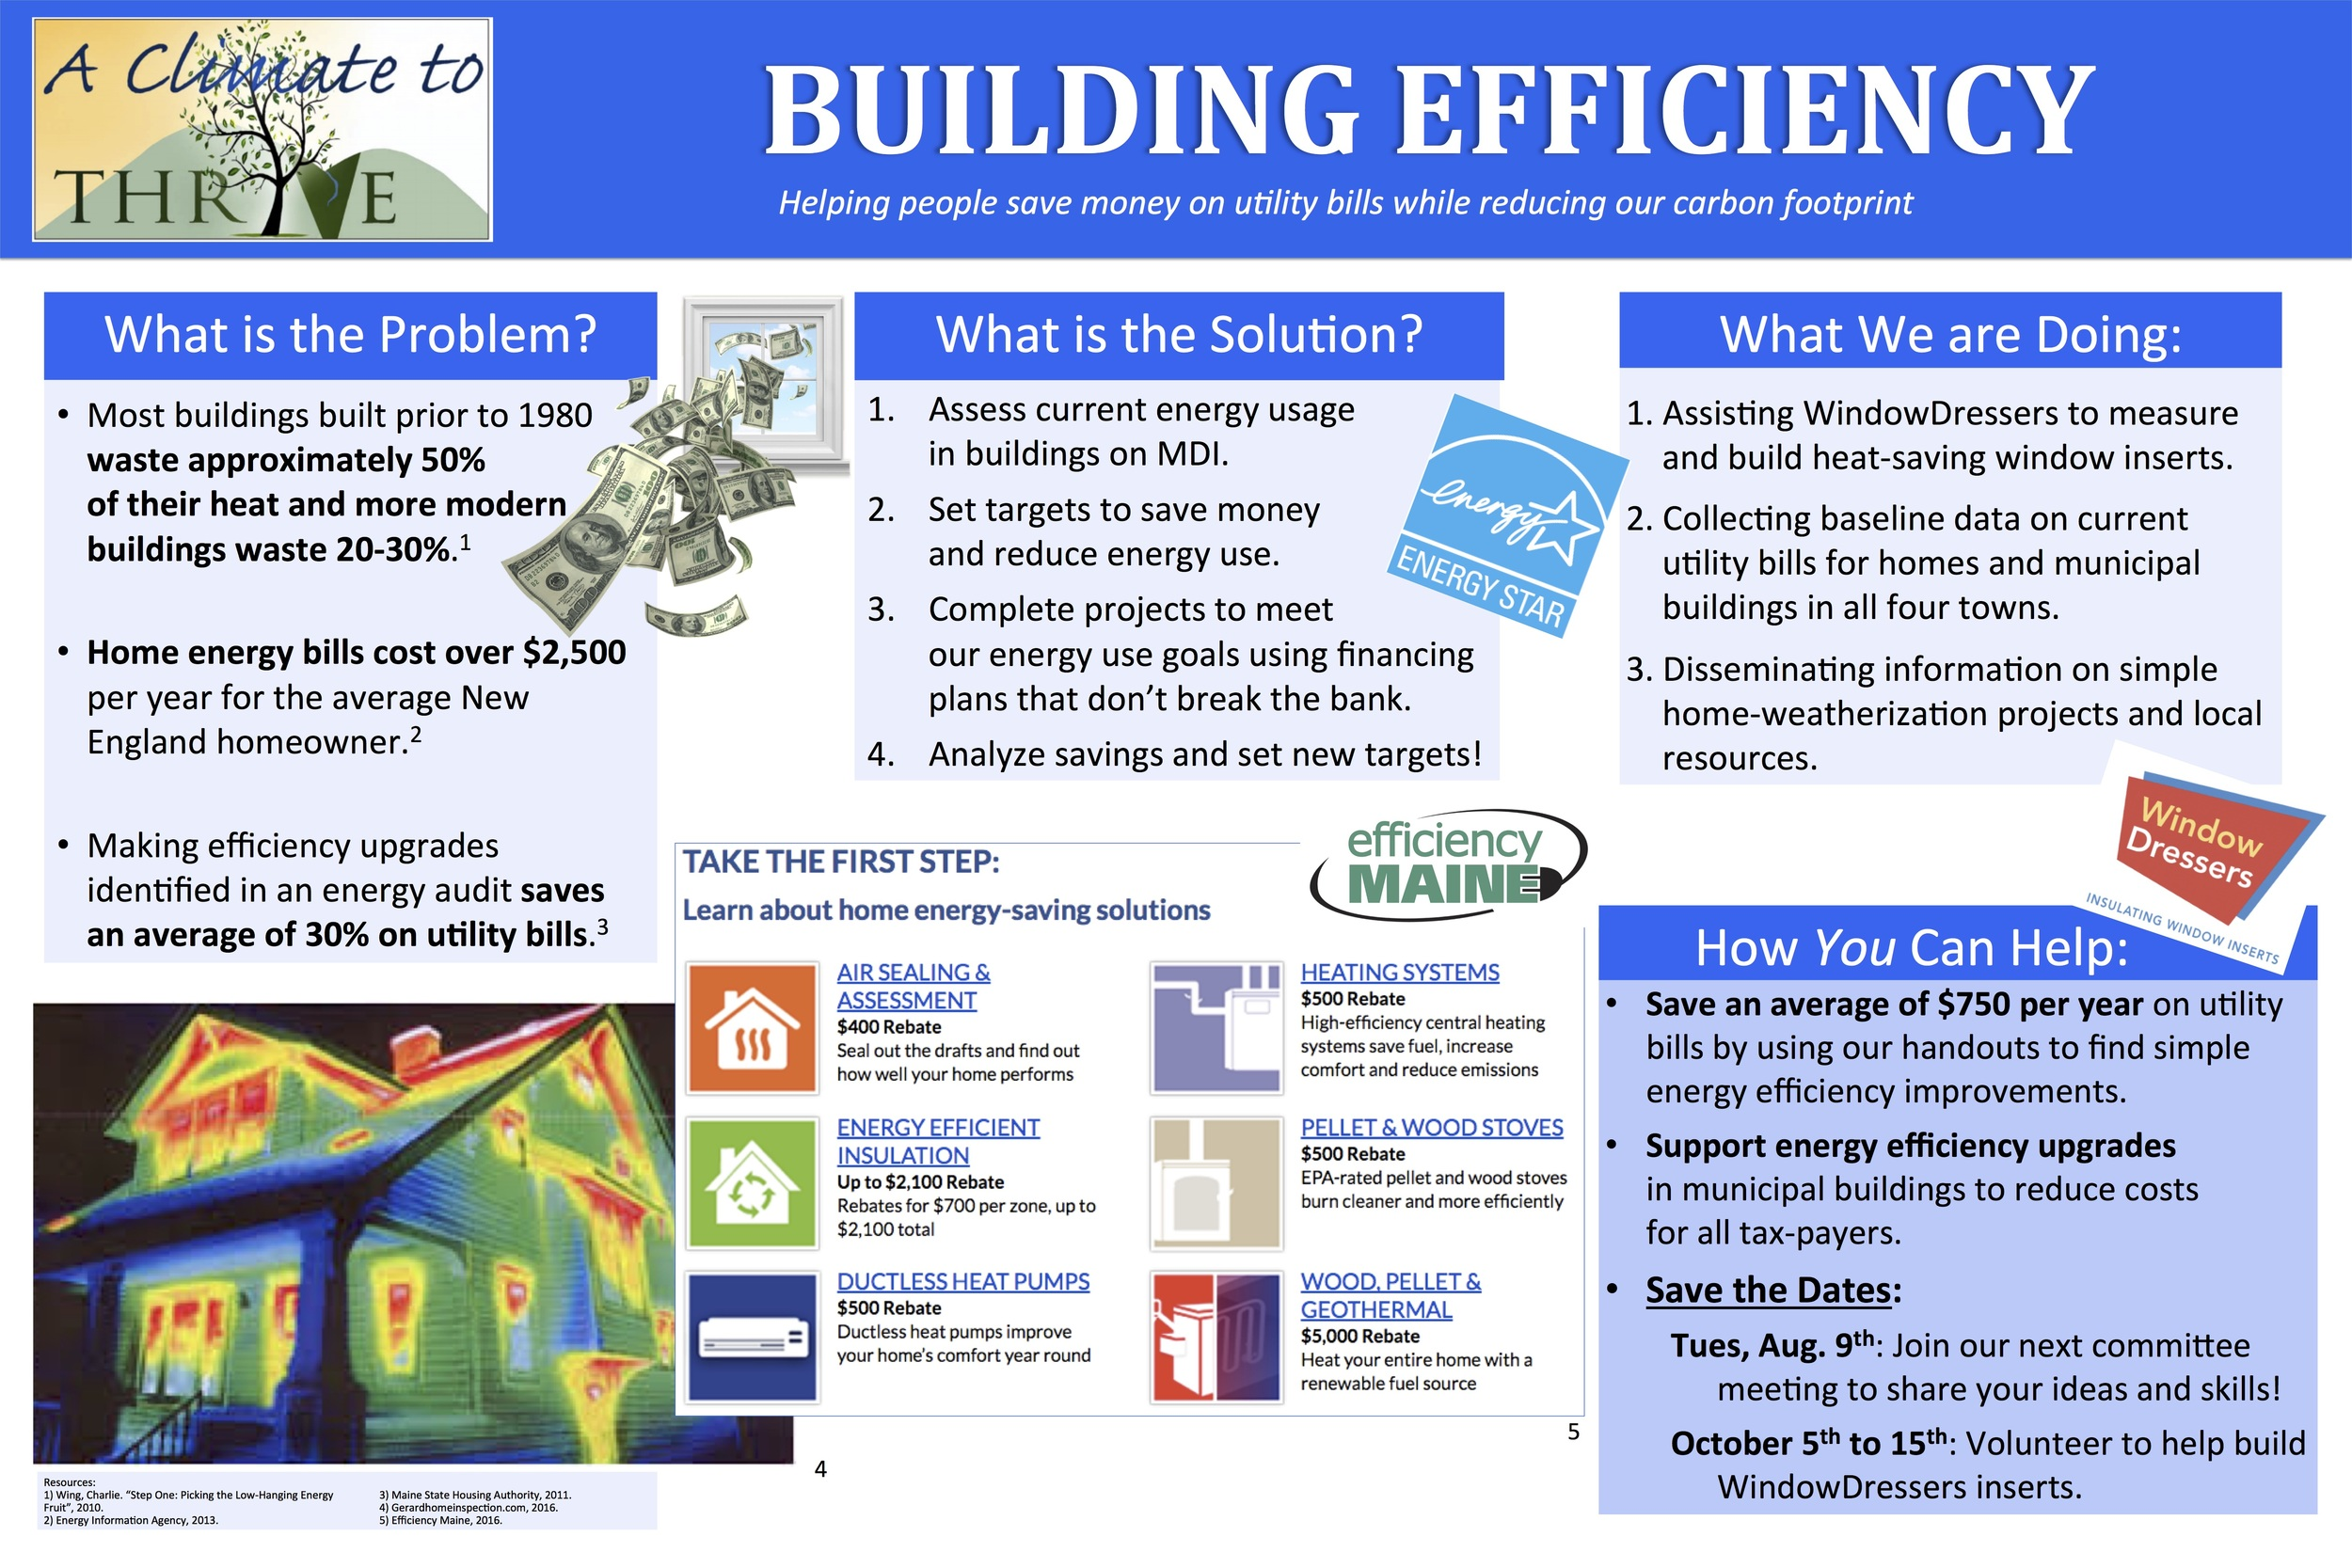 Building Efficiency — A Climate to Thrive